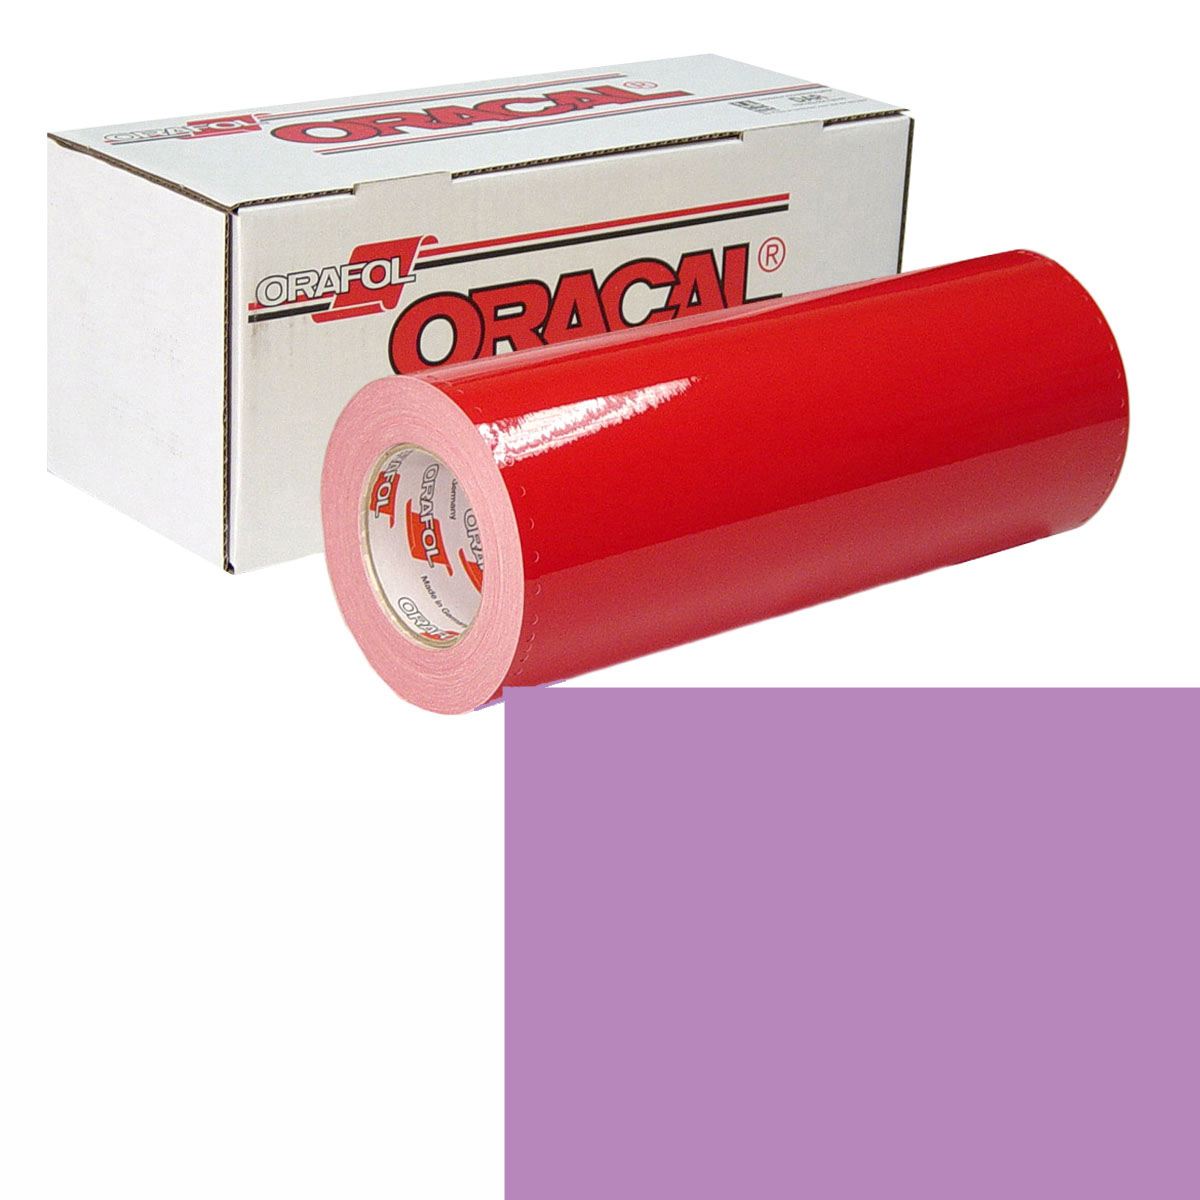 ORACAL 951 Unp 24in X 10yd 409 Pale Lilac